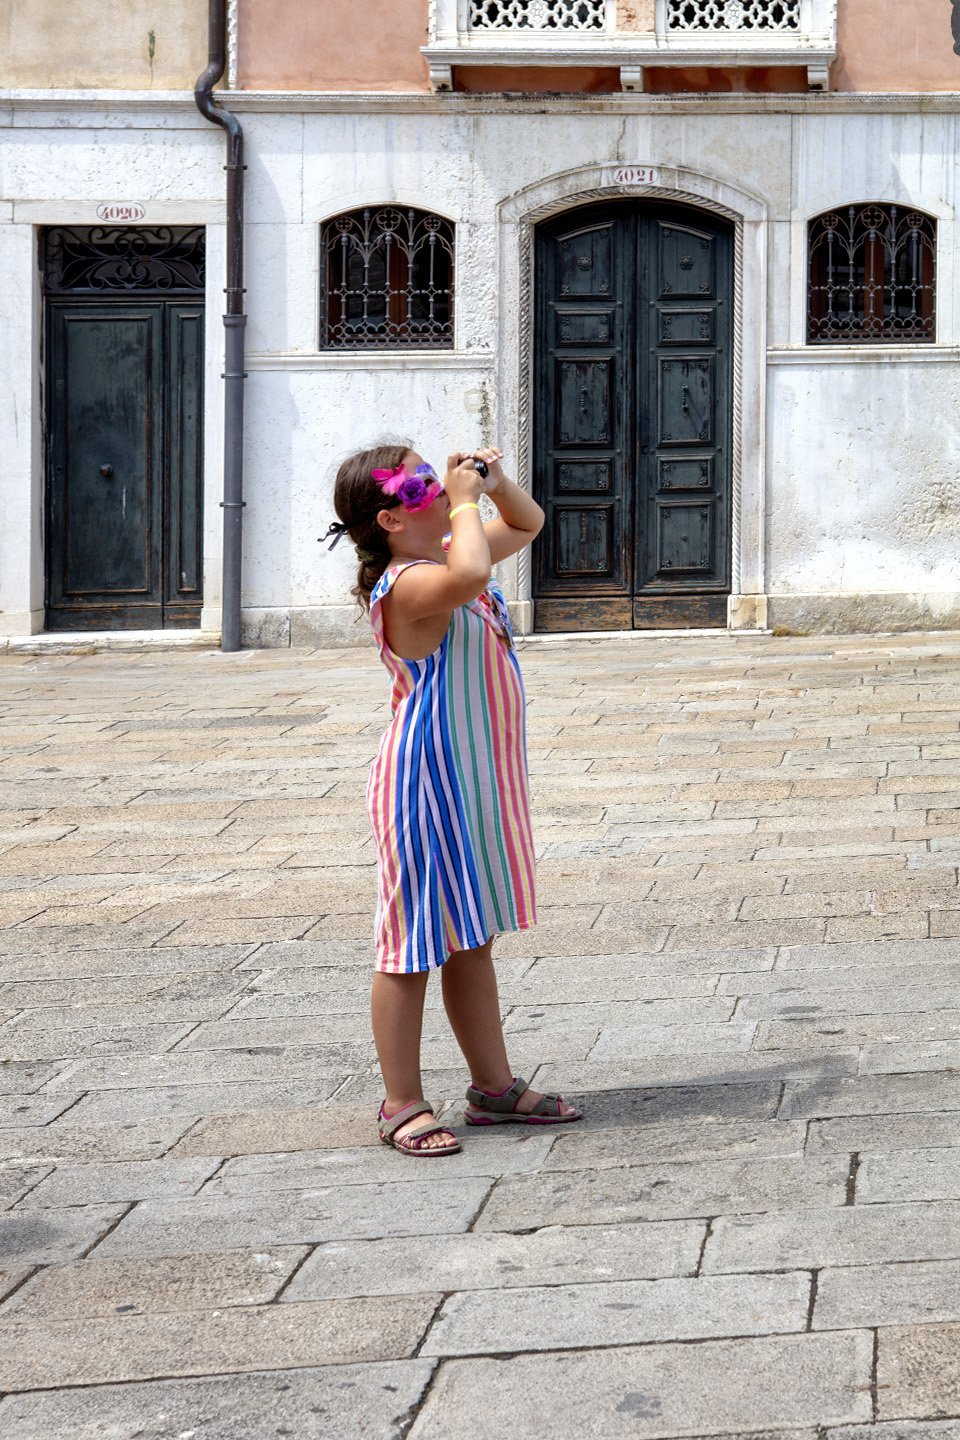 Child Taking Picture, Campo Manin, Venice, Italy, July 12, 2018